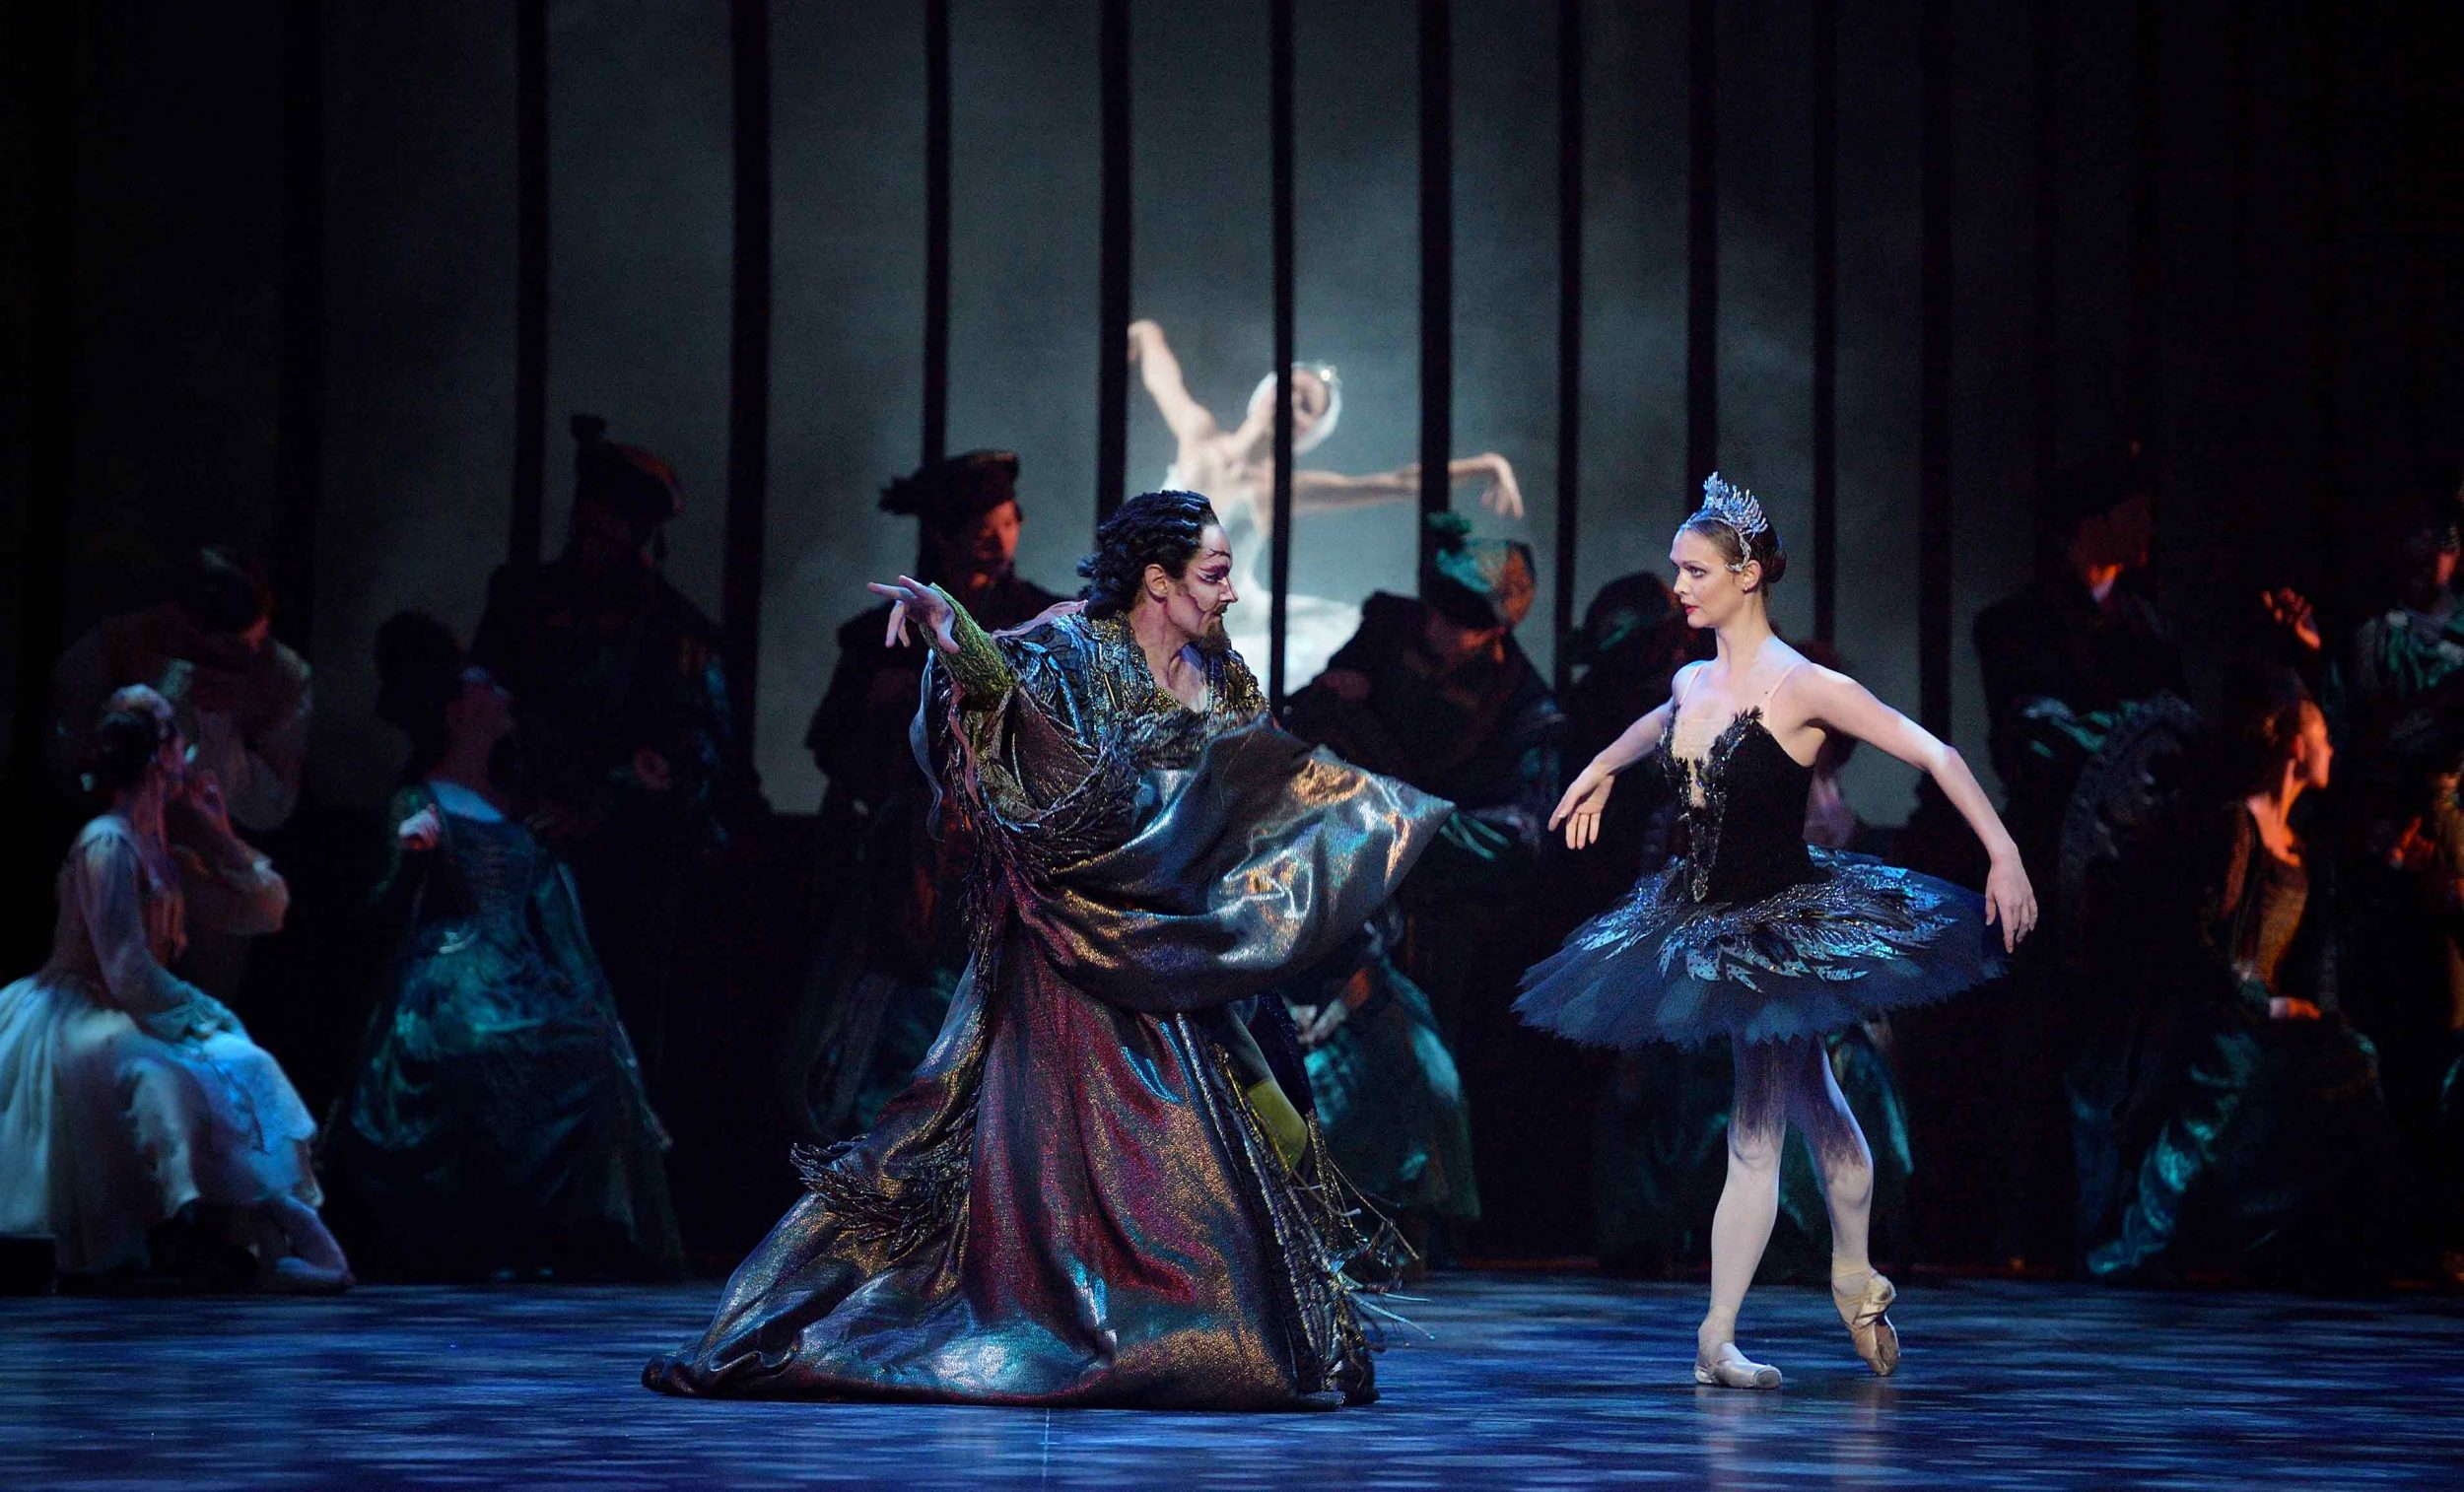 James-Streeter-and-Jurgita-Dronina-in-Swan-Lake-©-Laurent-Liotardo_WEB